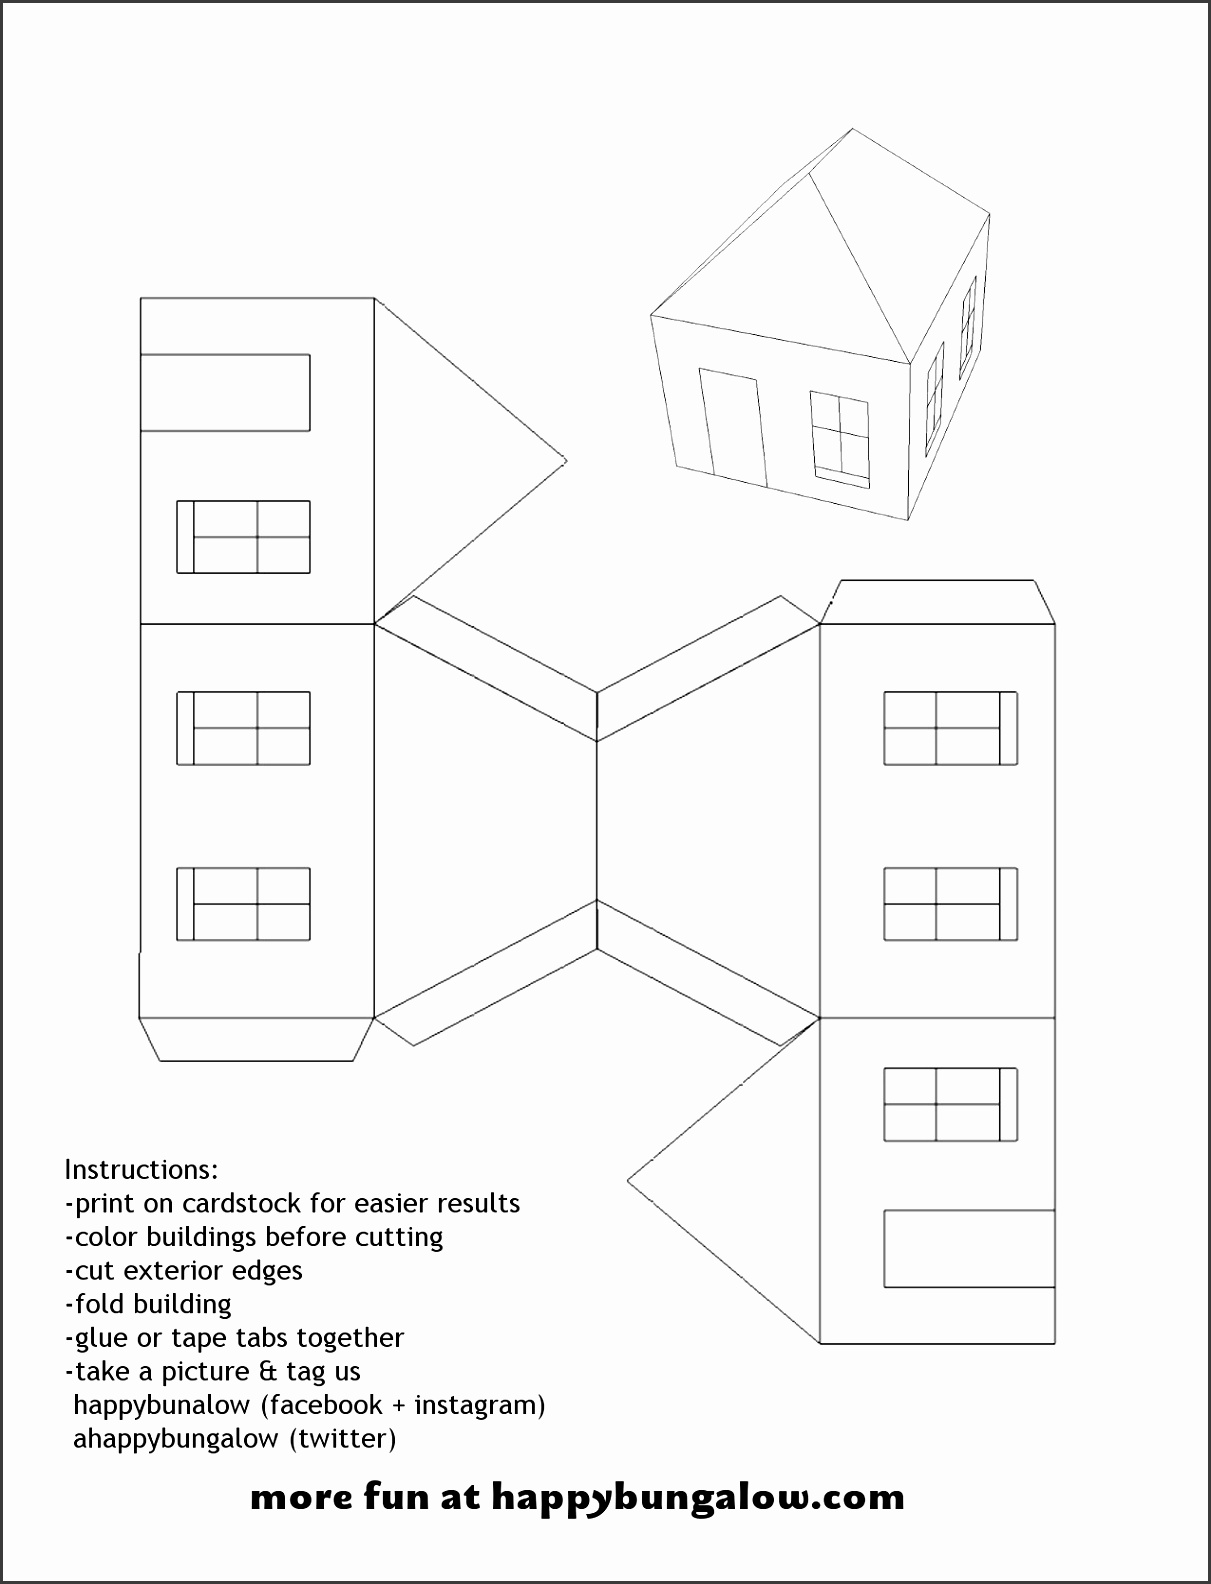 5 Paper House Template - SampleTemplatess - SampleTemplatess